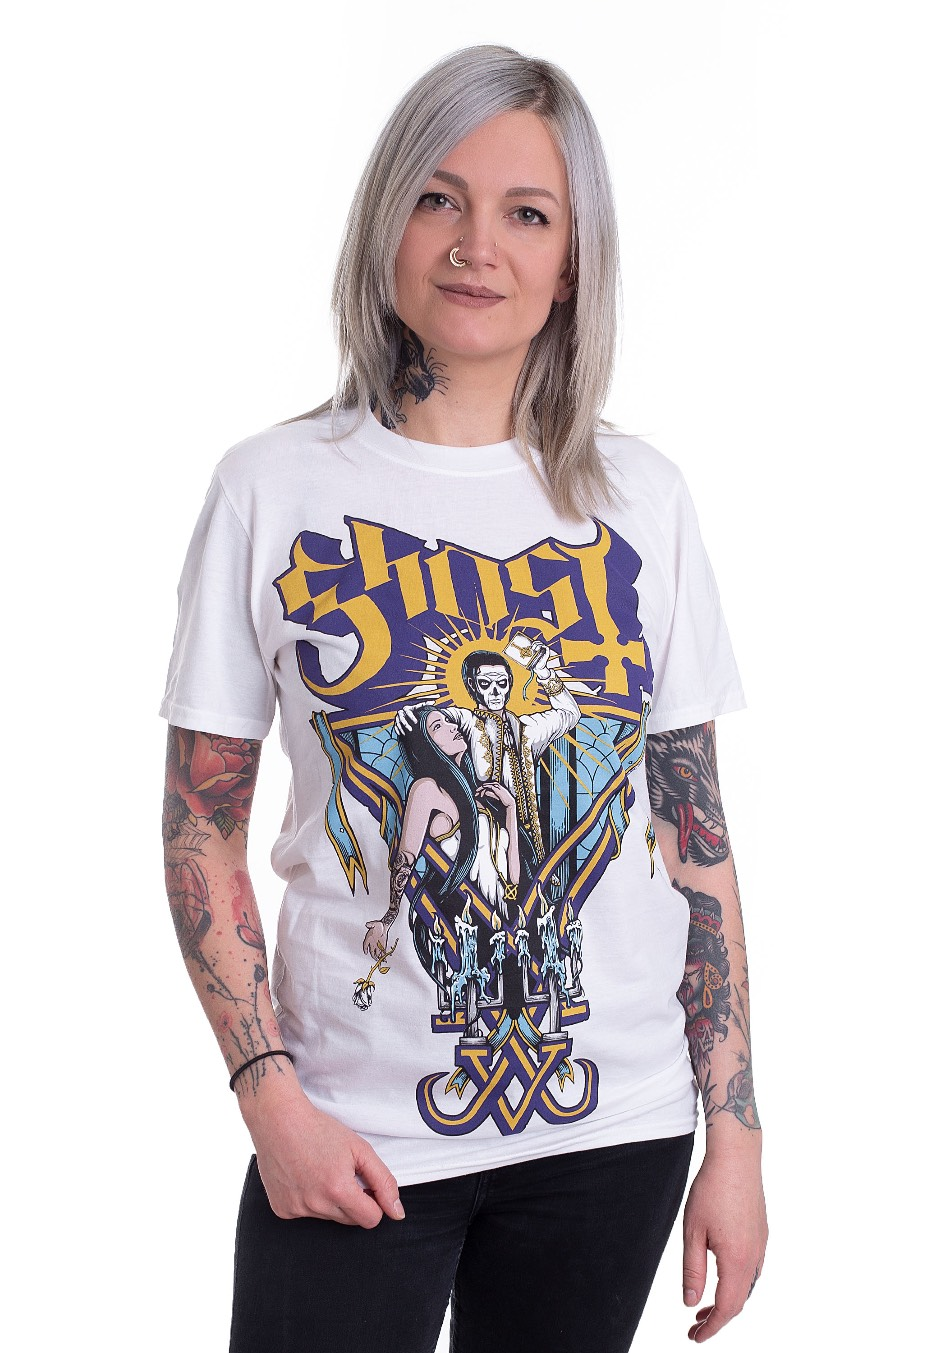 74f721743327 Ghost - Blessed White - T-Shirt - Official Hard And Heavy Merchandise Shop  - Impericon.com AU